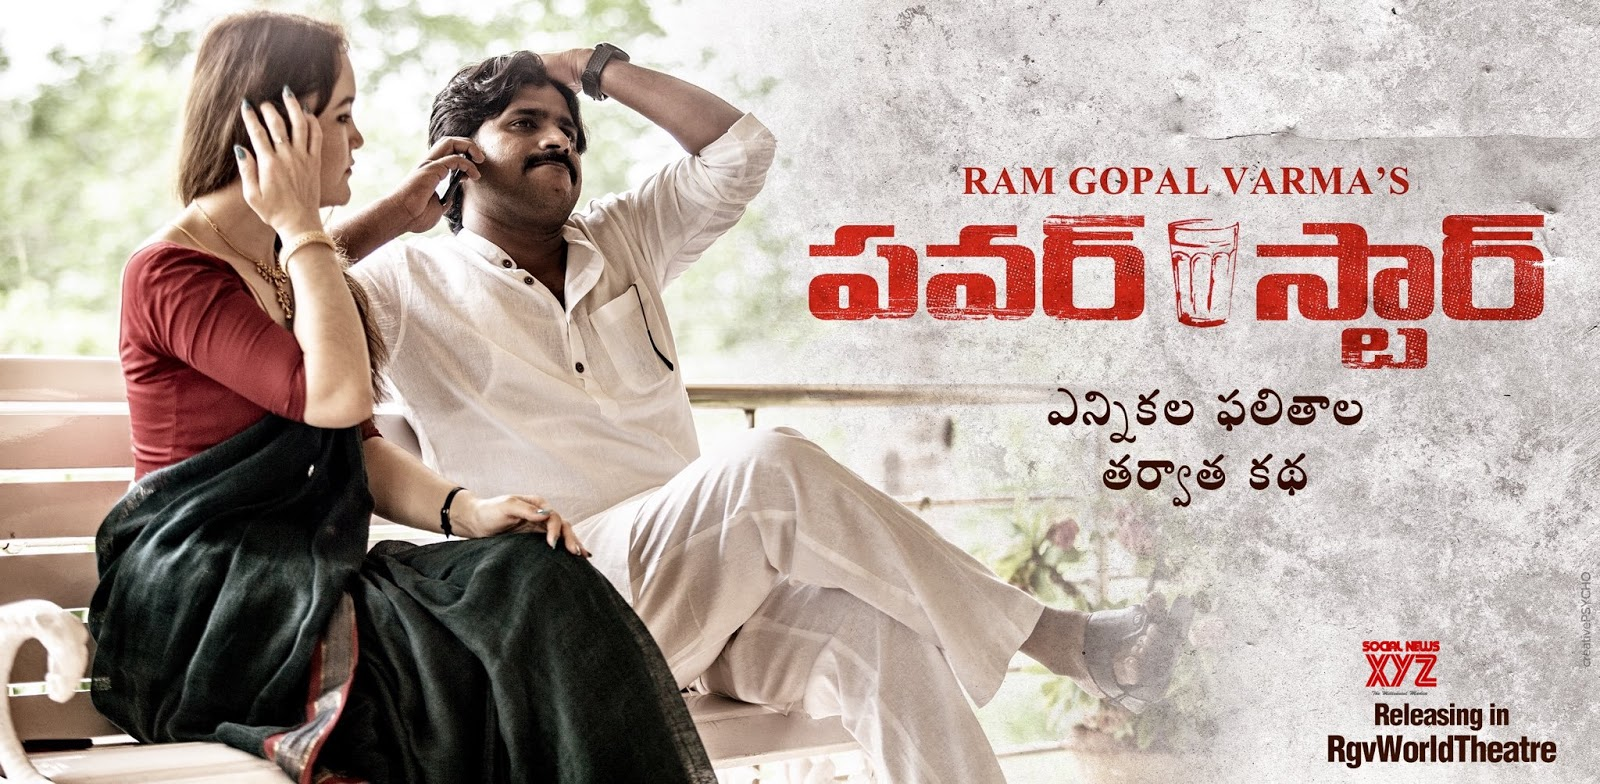 Ram Gopal Varma Fined By GHMC For Power Star Movie Posters